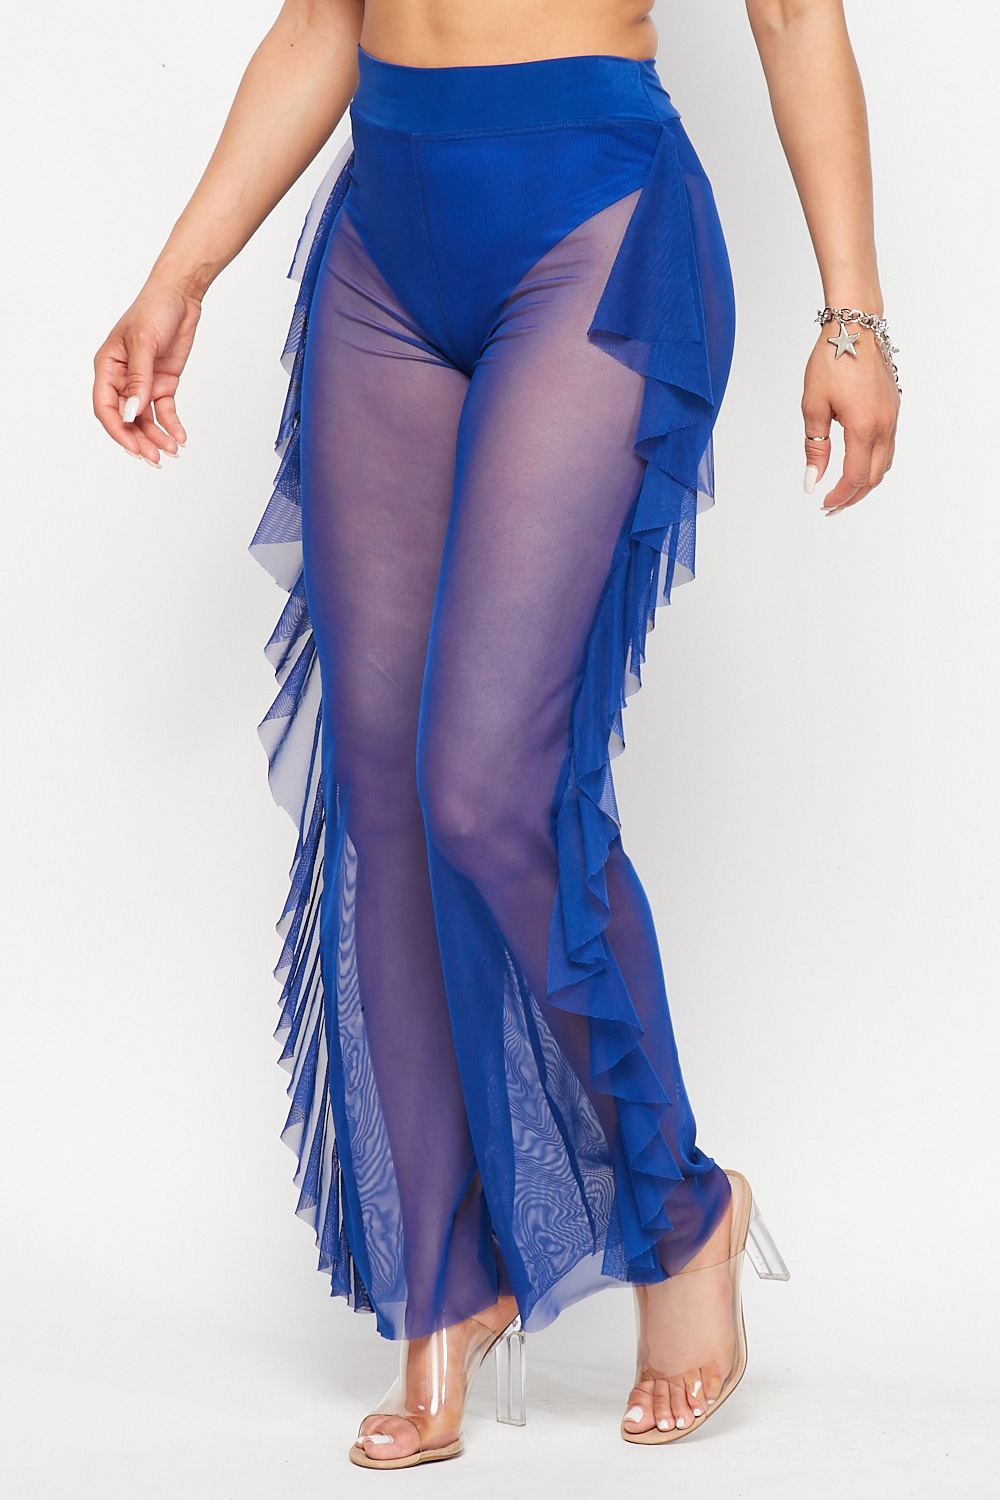 Hot See Through Mesh Ruffle Bottoms in Royal Blue - Fashion House USA